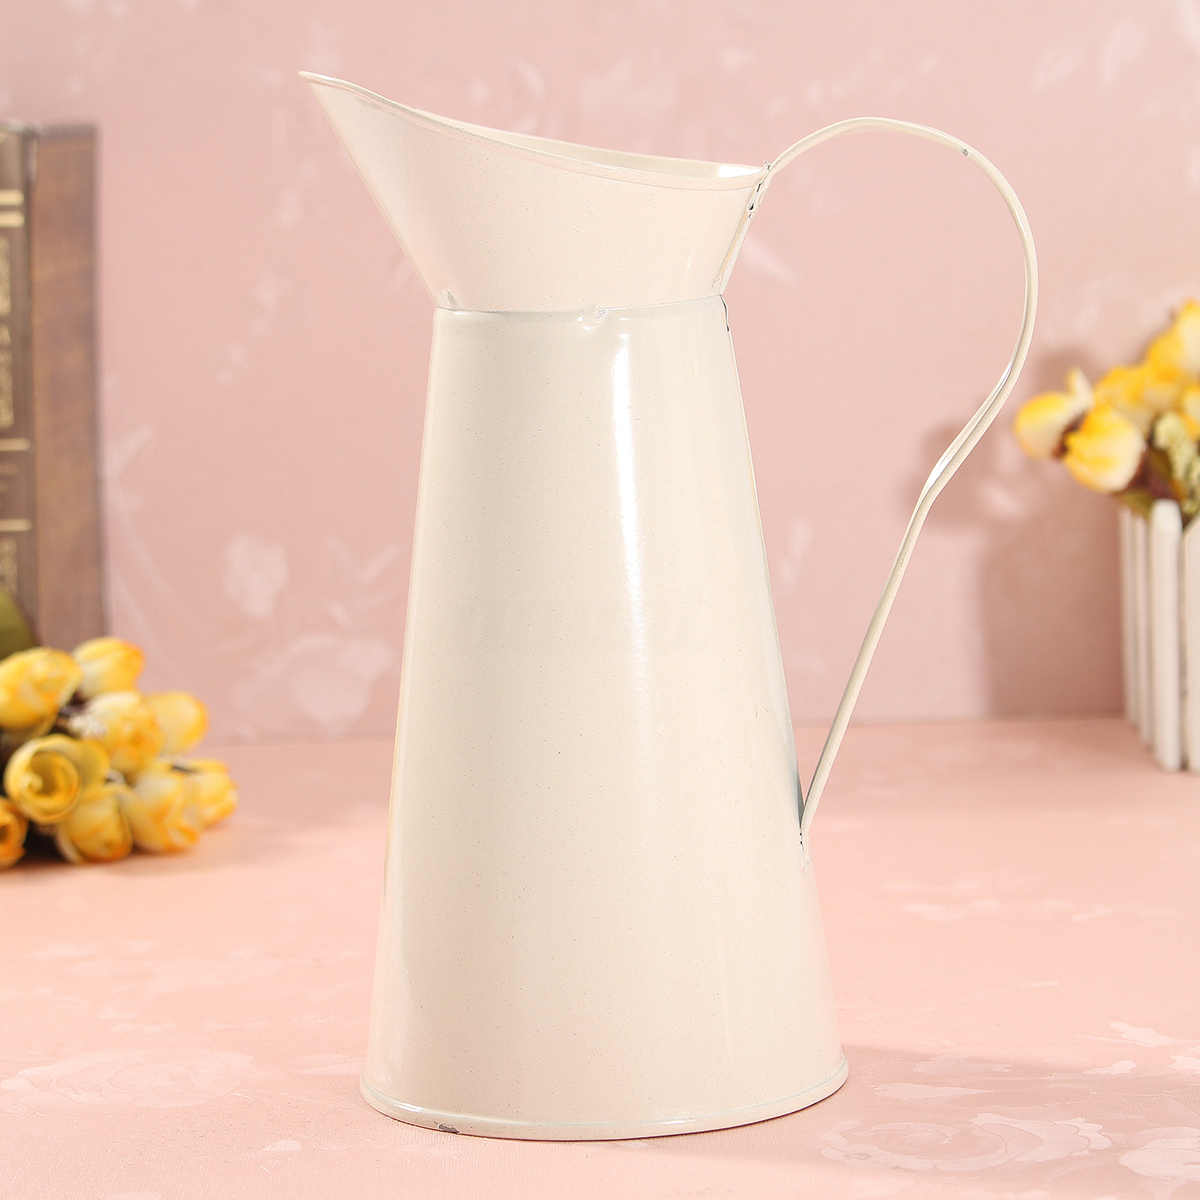 White Cream Metal Flower Vase Vintage Tall Vase Kettle Wedding Flower Vase Vintage Pastoral Enamel Pitcher Jug For Home Decor Vases Aliexpress